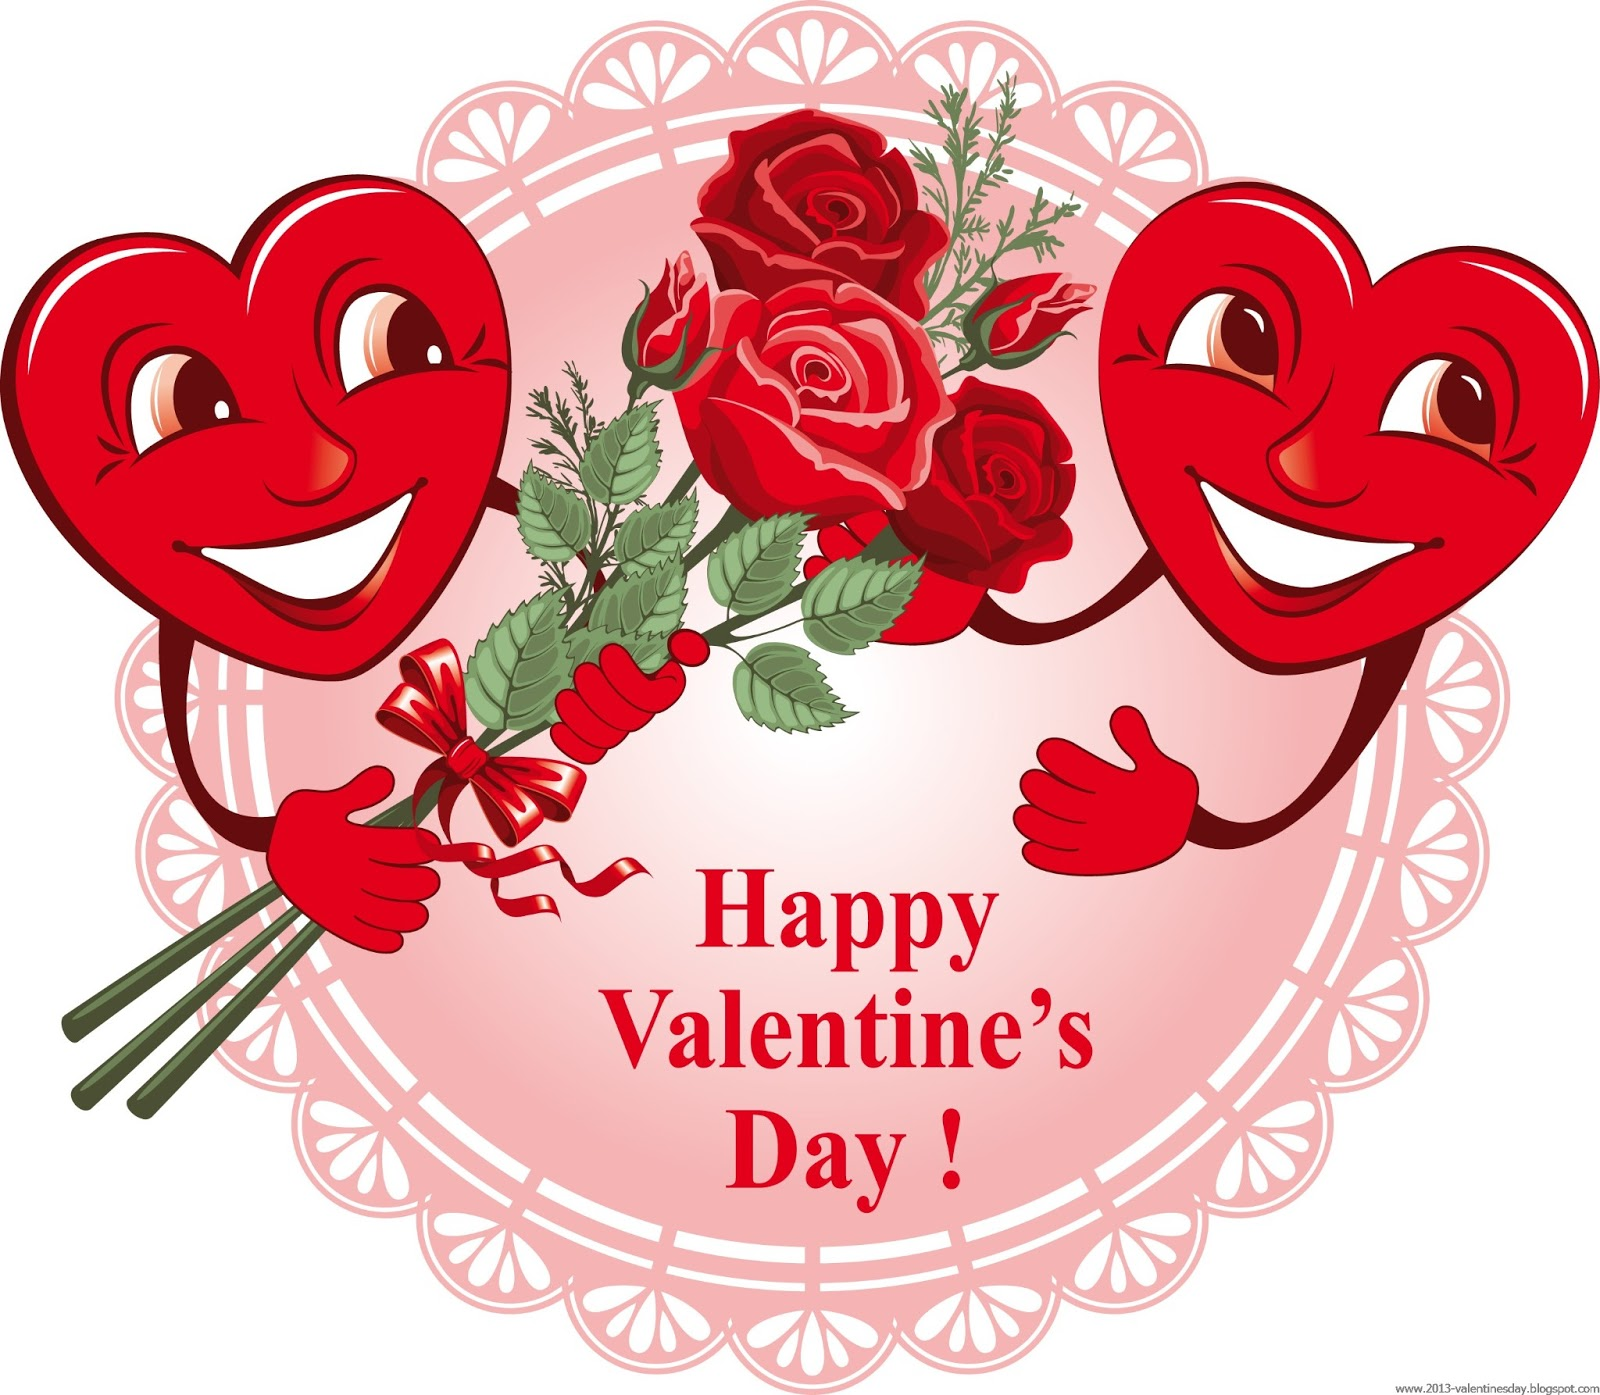 Free animated valentines clipart jpg free library Animated Valentine Clipart & Animated Valentine Clip Art Images ... jpg free library